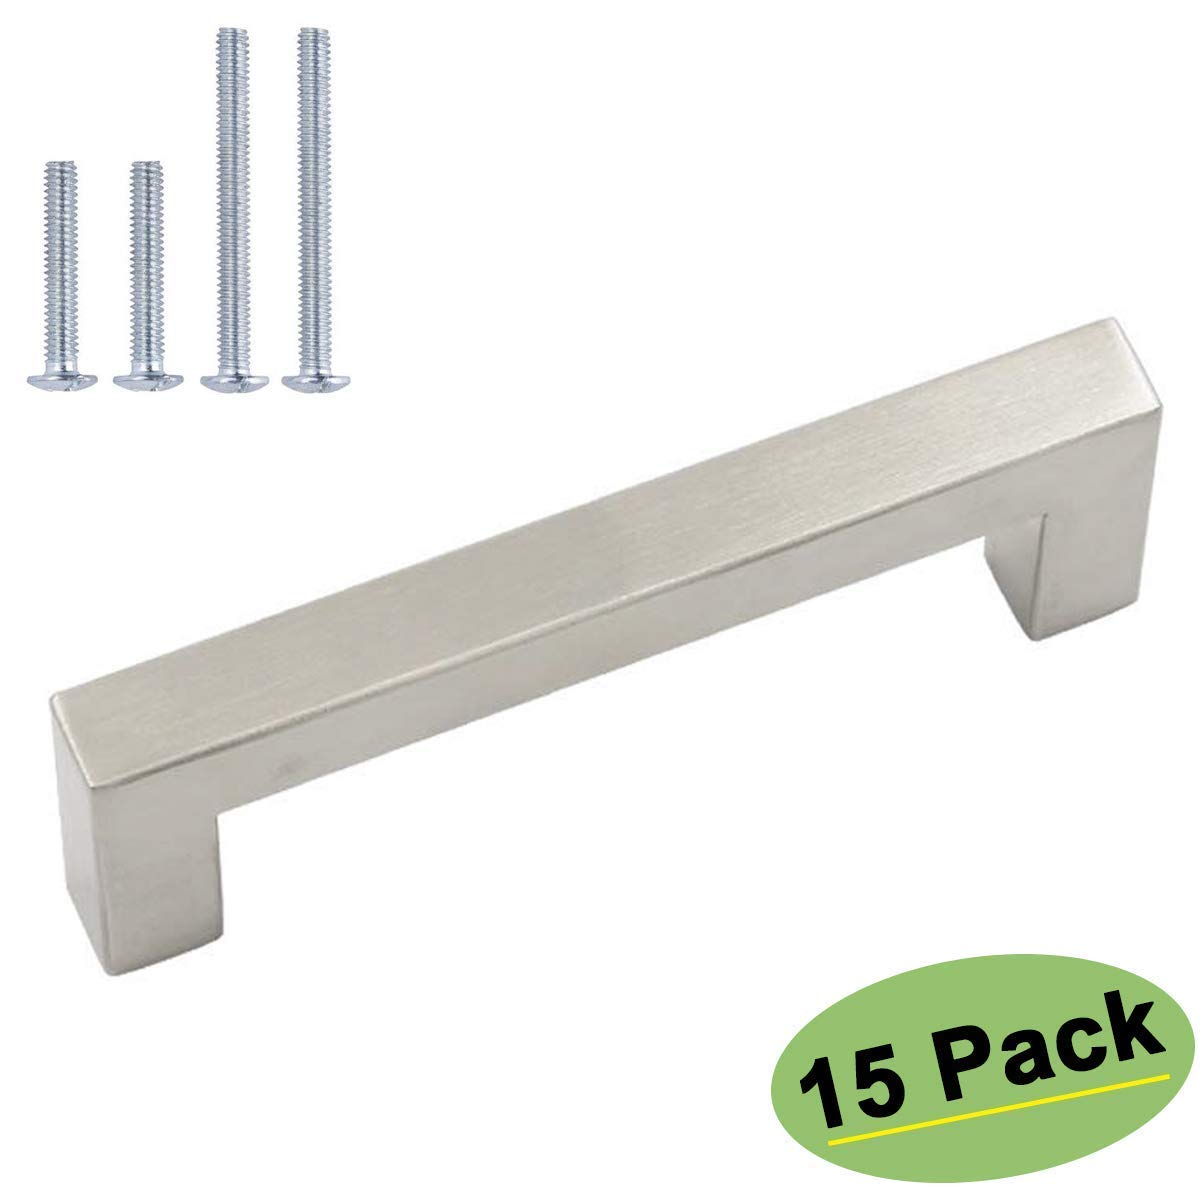 homidy Cabinet Pulls Brushed Nickel 4 inch Modern Cabinet Pulls 15 Pack HDJ12SN Cabinet Hardware Brushed Nickel Drawer Pulls Modern Kitchen Cabinet Handles